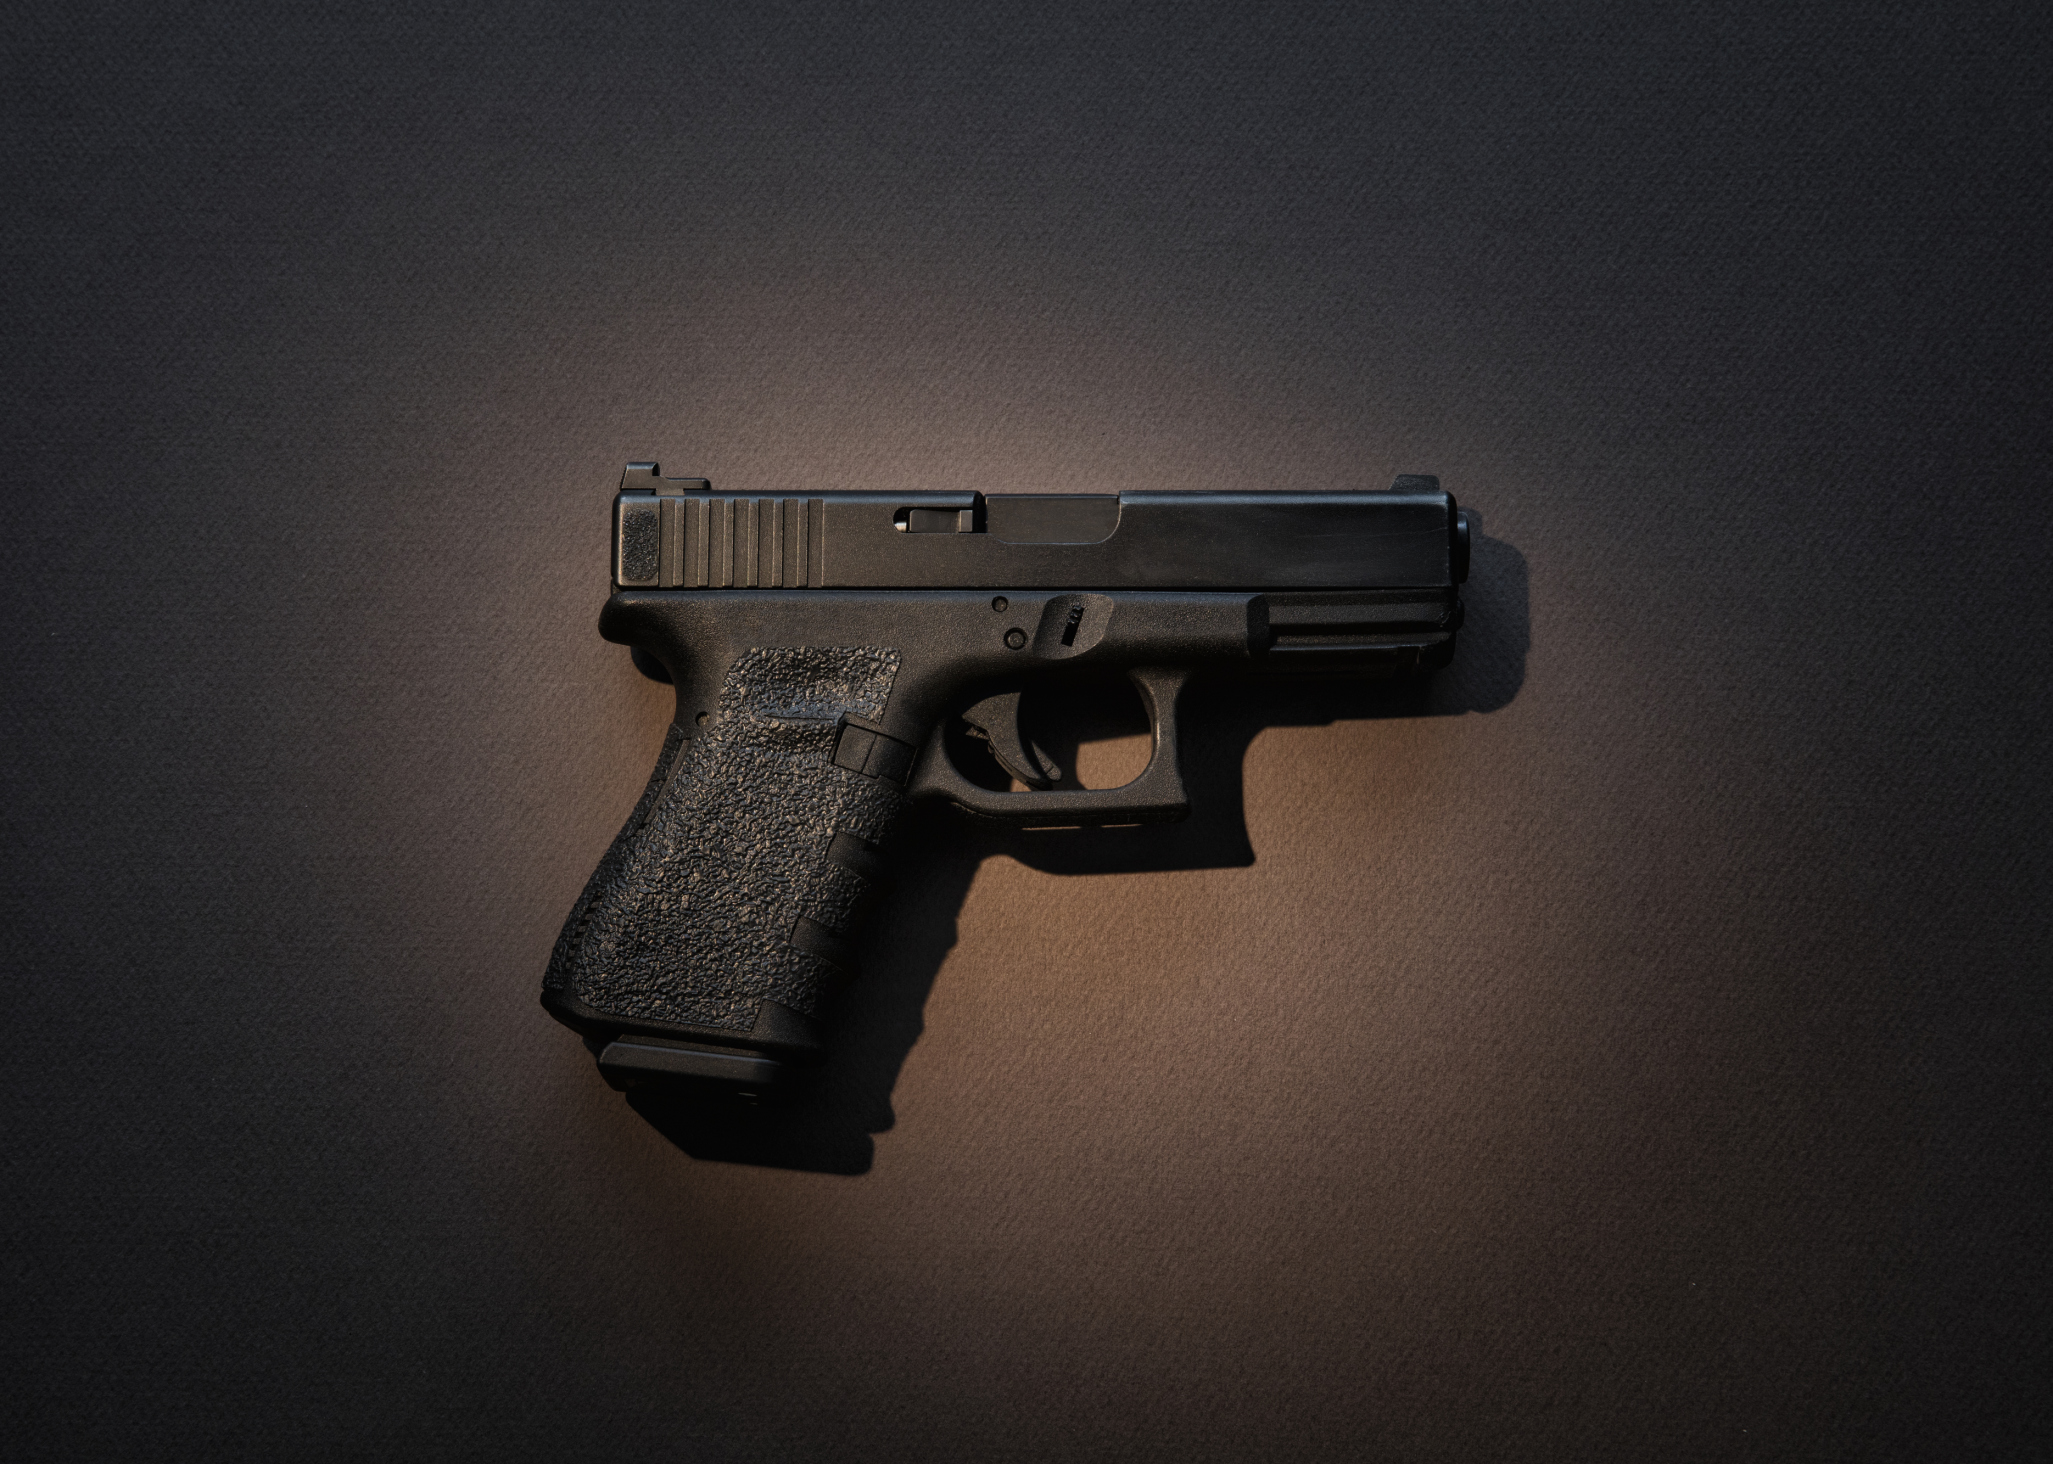 Semiautomatic handgun